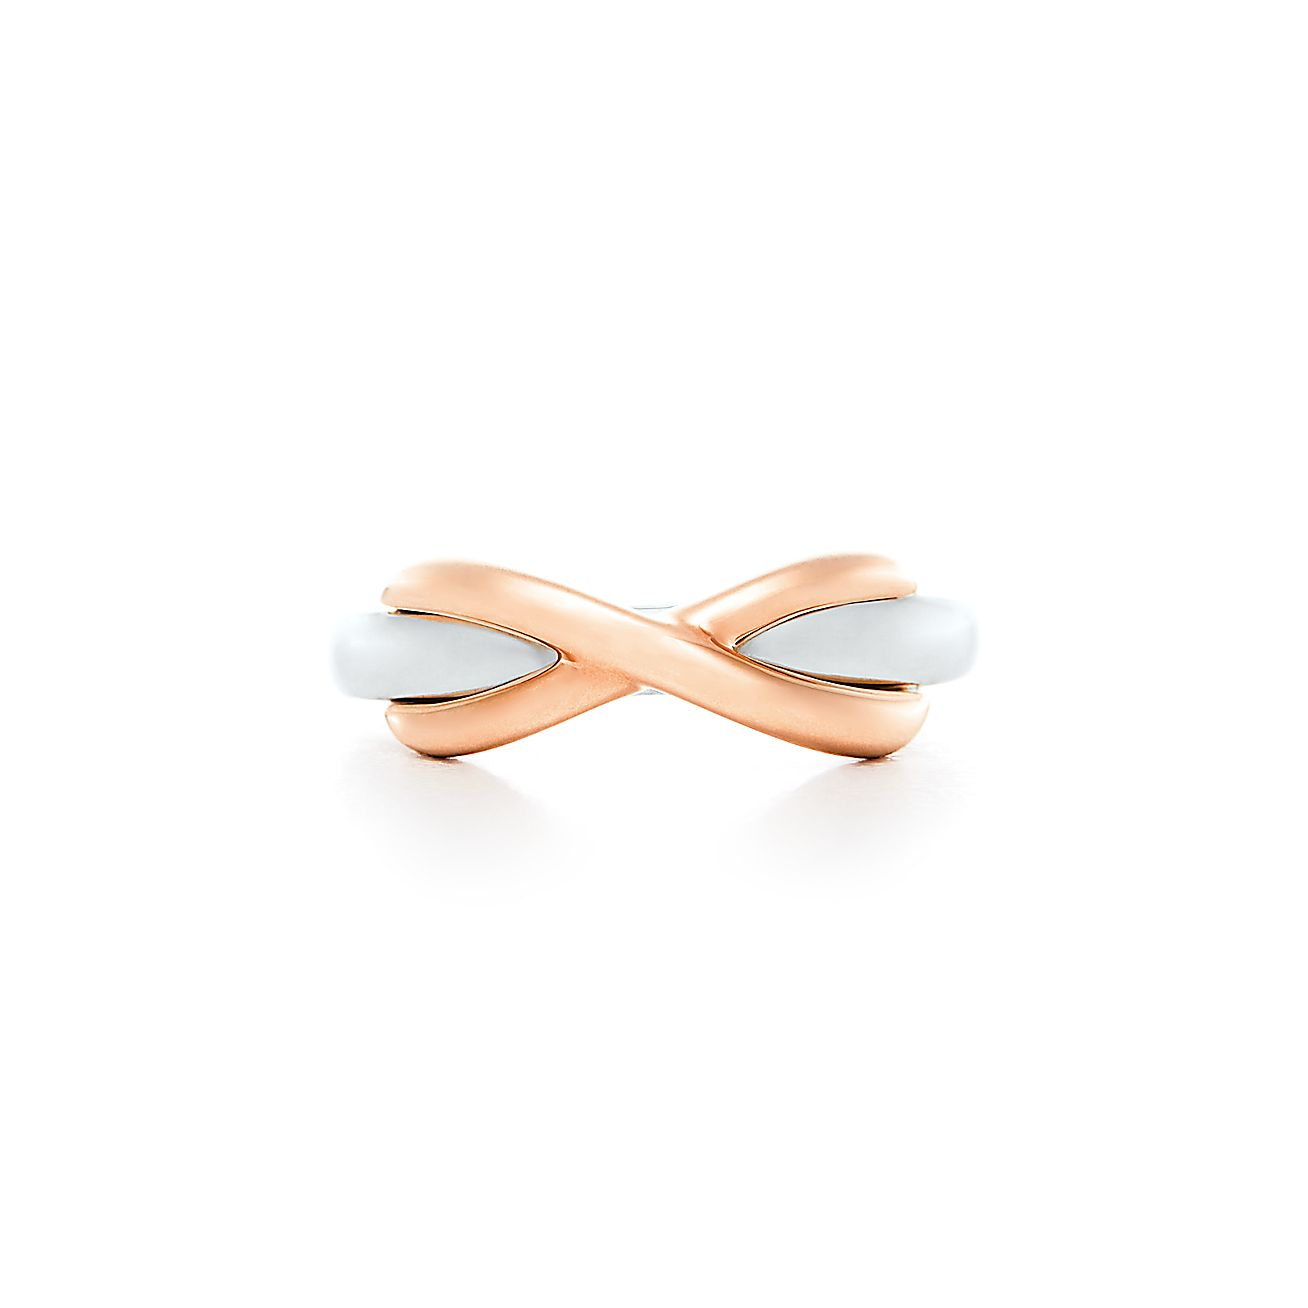 Tiffany Infinity Ring In Sterling Silver And 18k Rose Gold